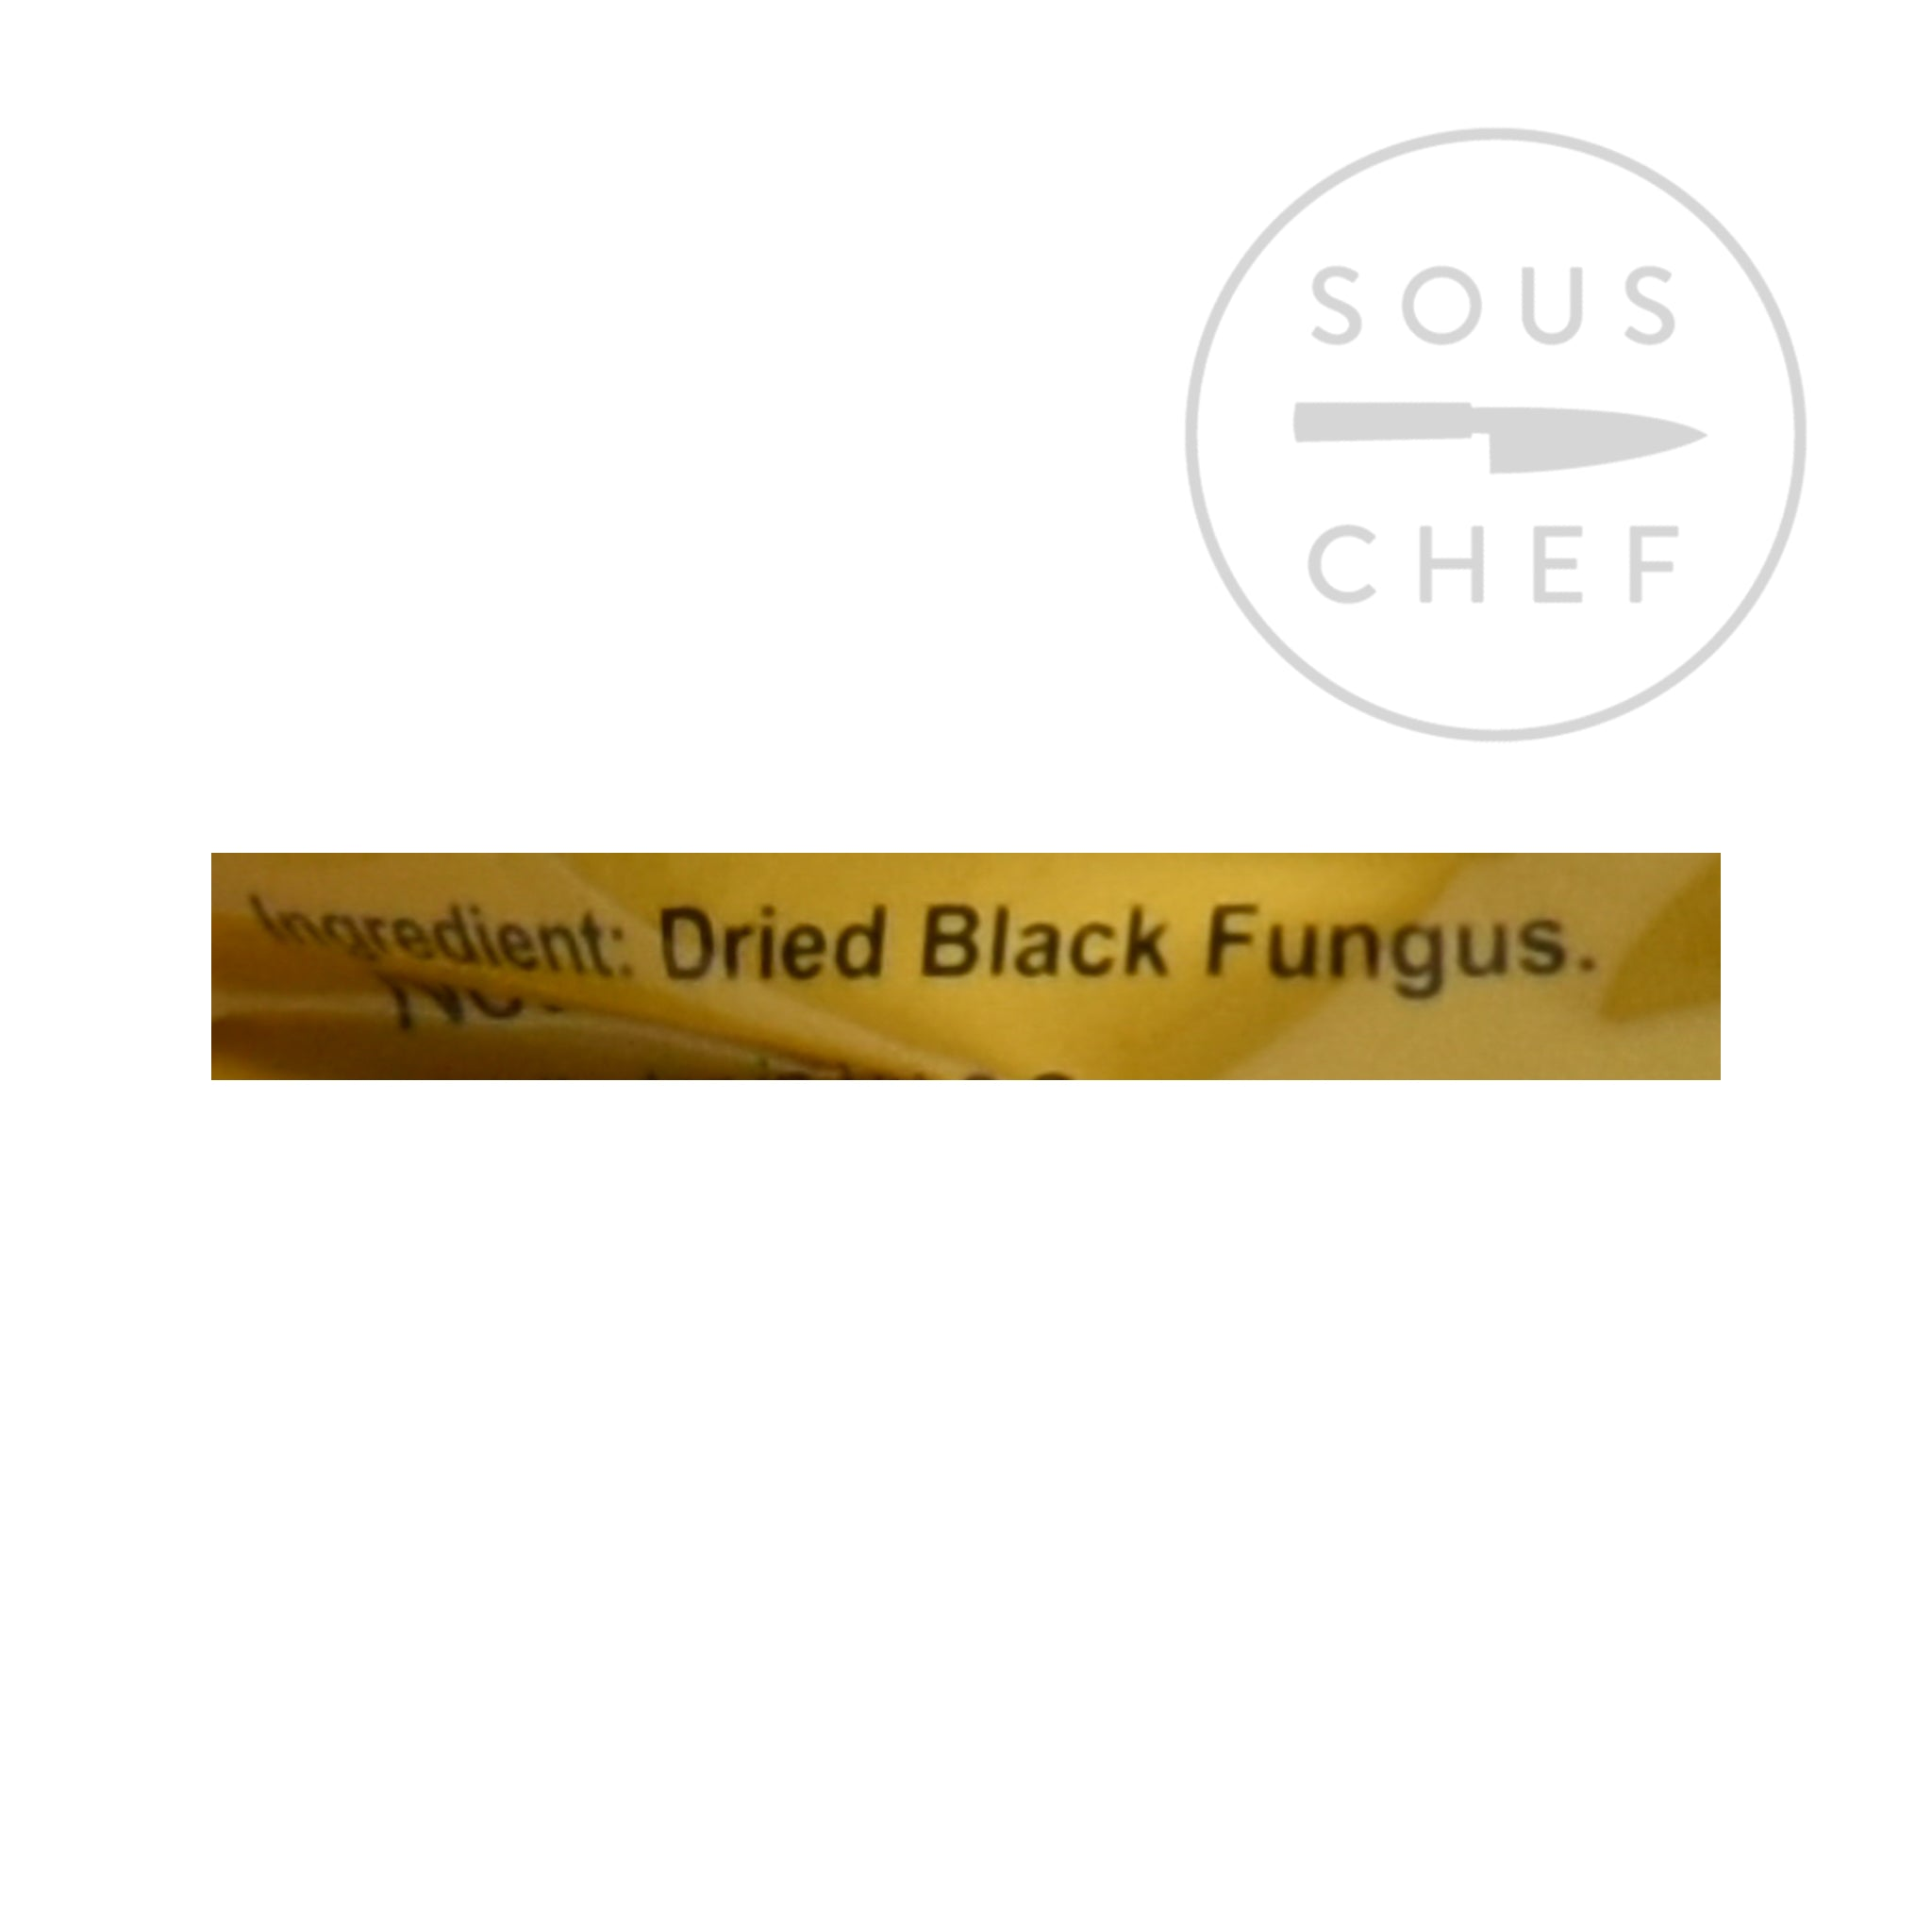 Black Fungus - Wood Ear 100g